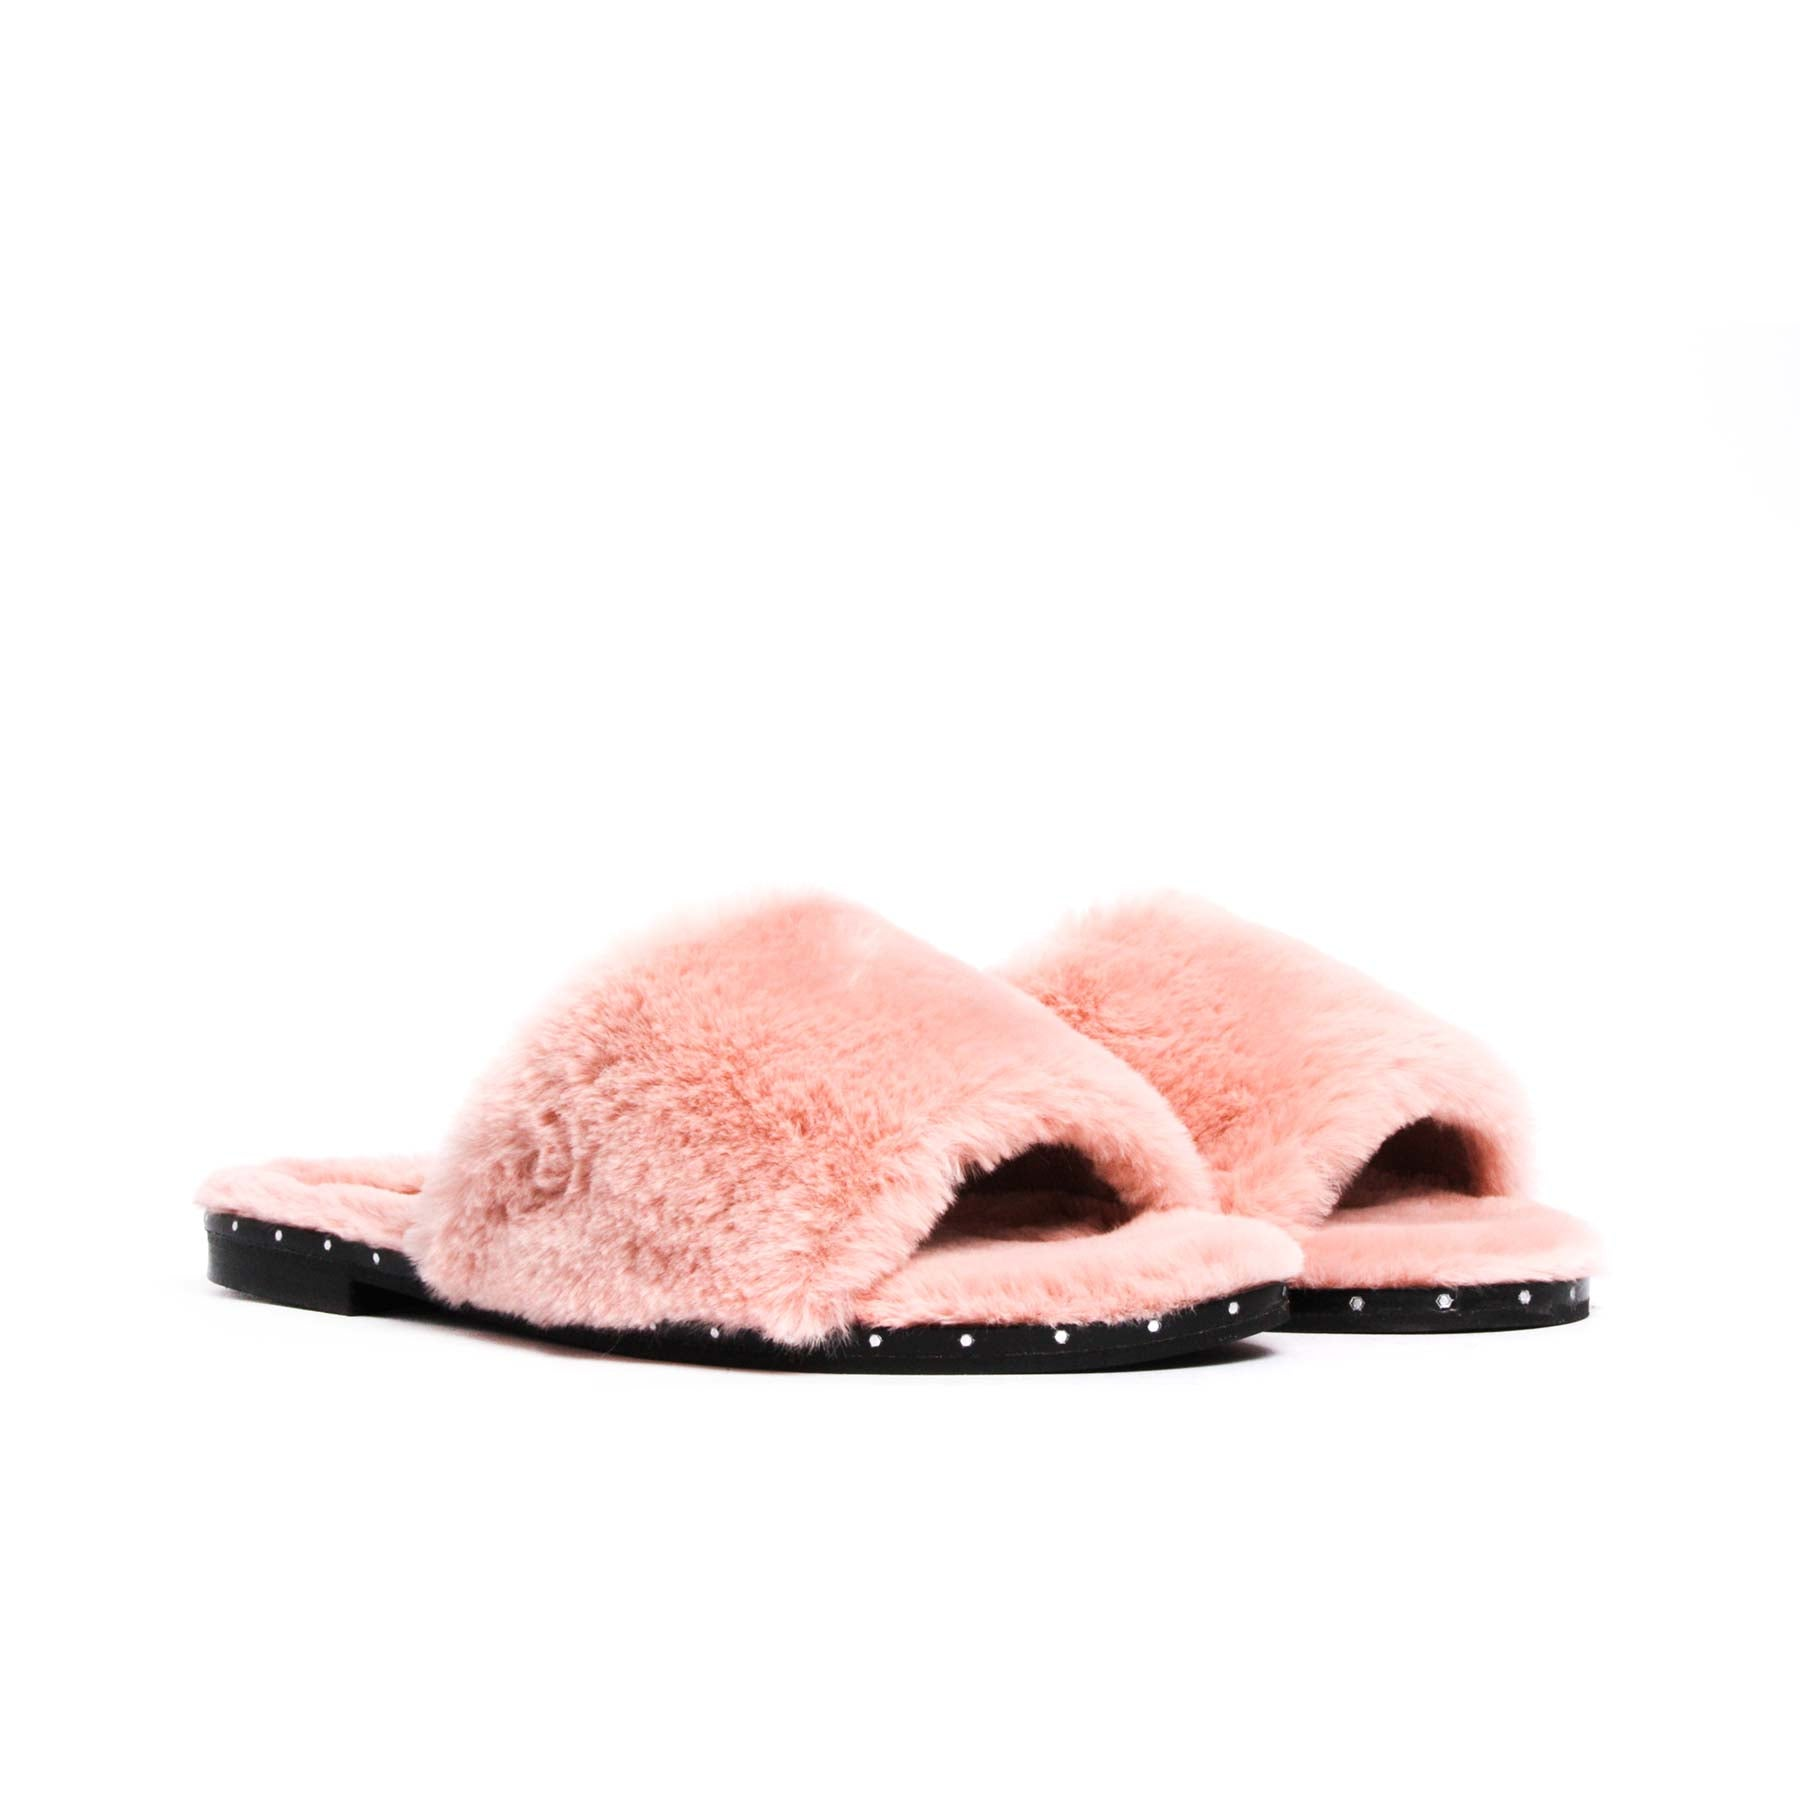 Sales, Eva Pink Fur - Lintervalle shoes for woman